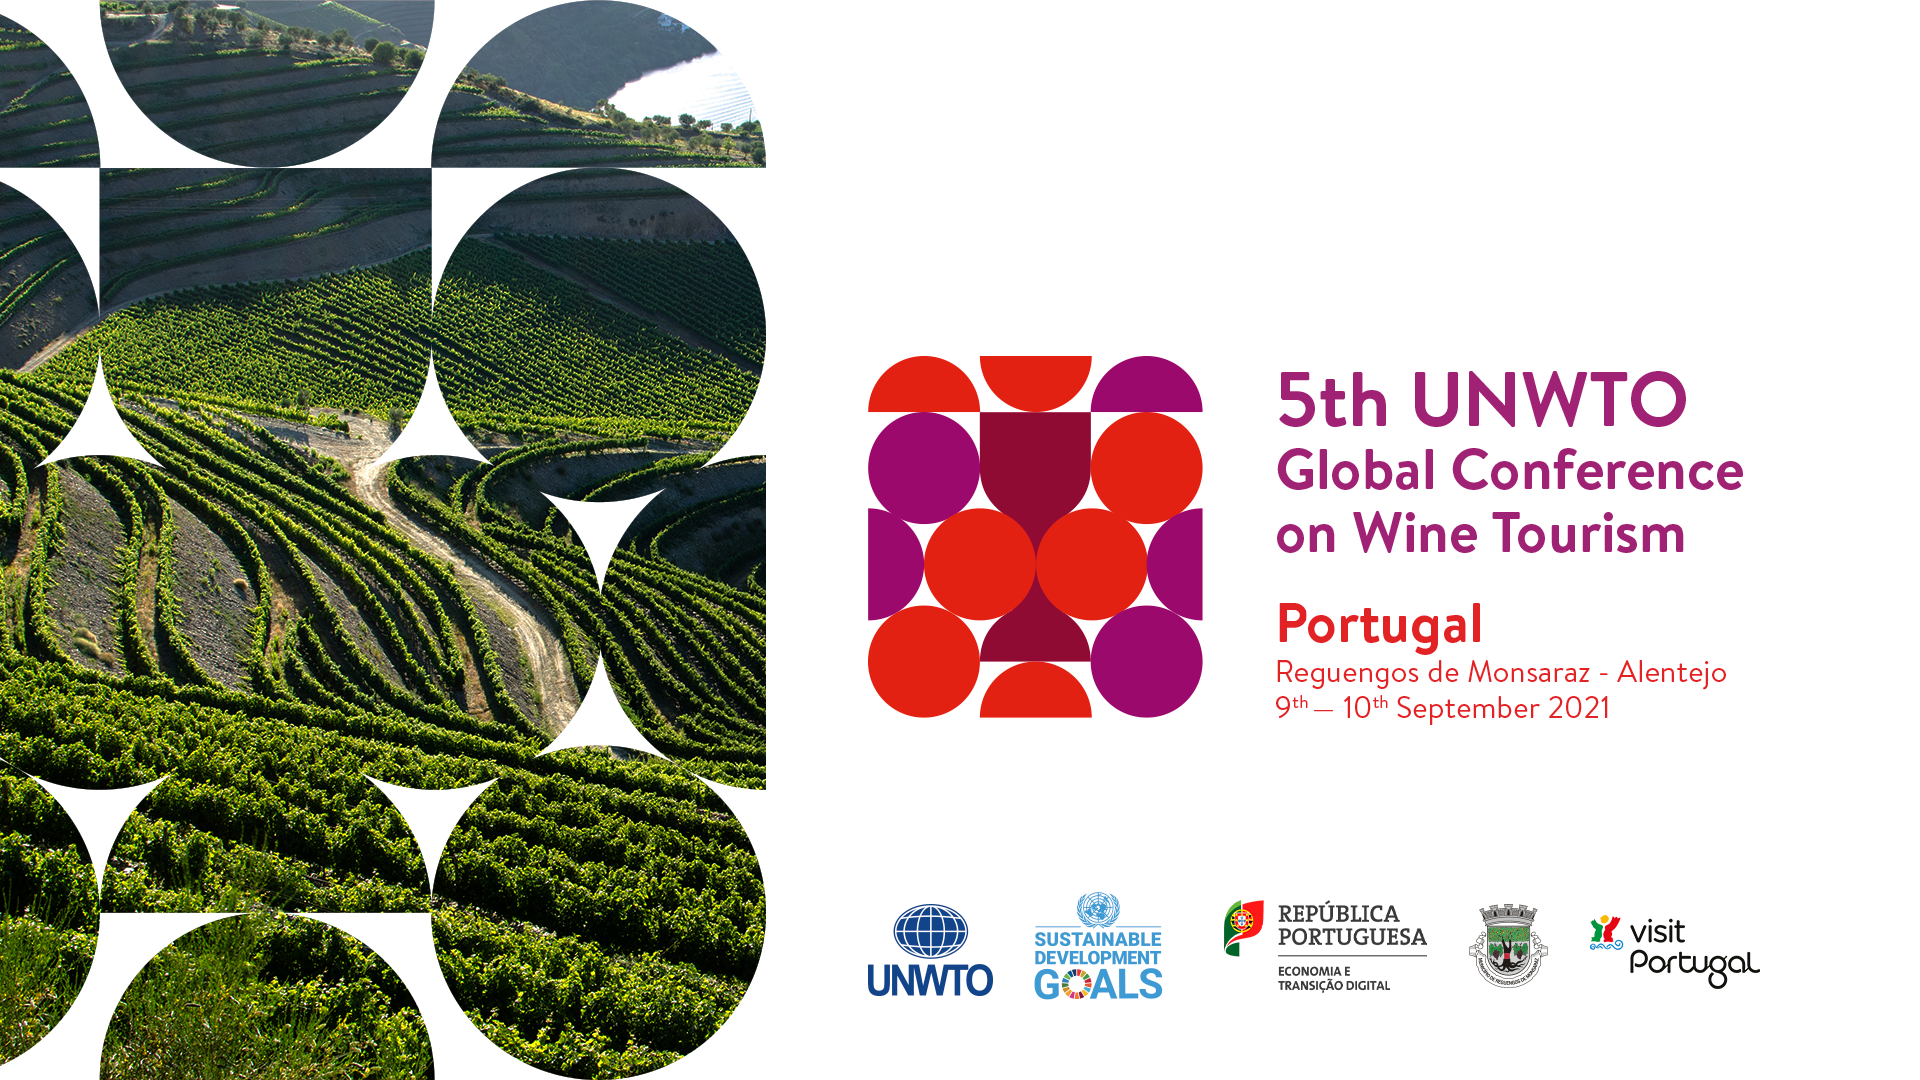 5th UNWTO Global Conference on Wine Tourism